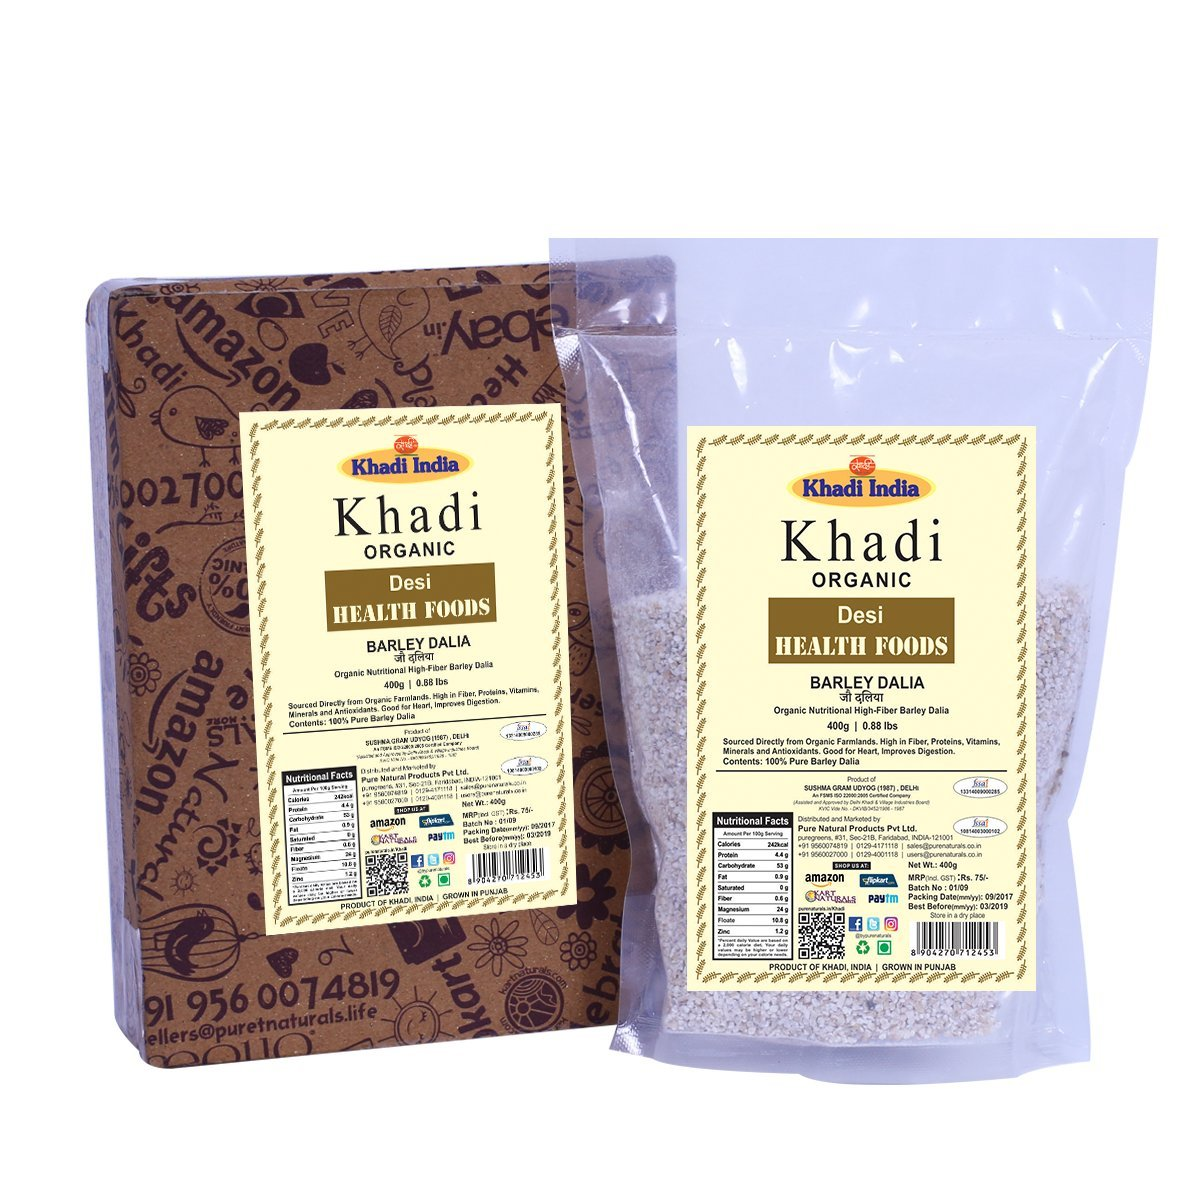 Khadi Organic Barley Dalia (Porridge) 400 GM - Natural, Healthy Organic Food Rich in Fibre by khadi bypurenaturals